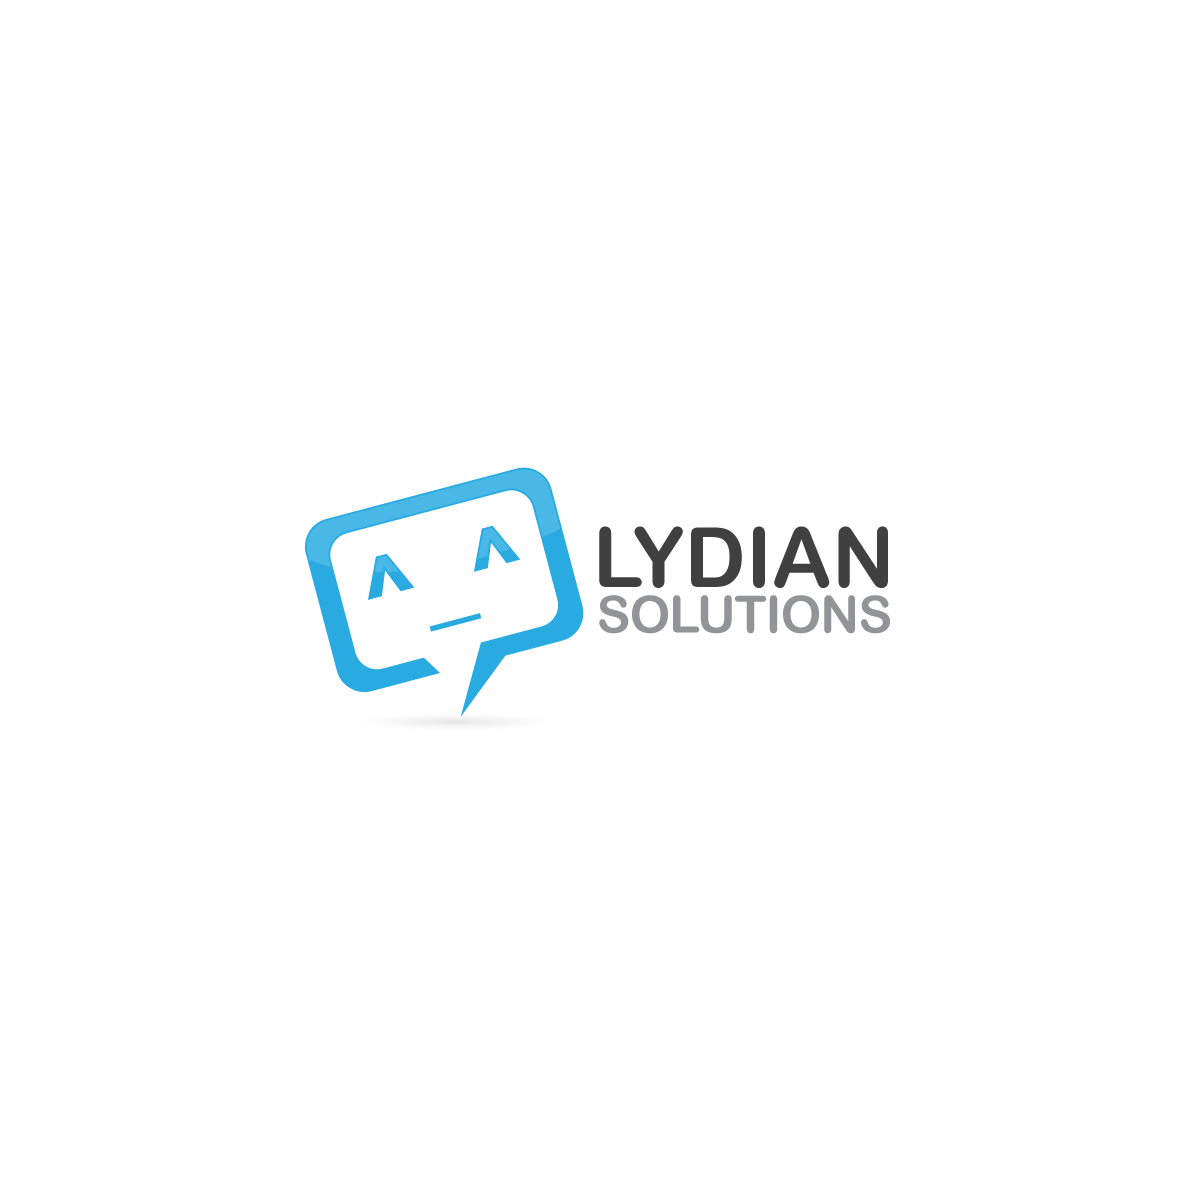 Logo Design by zesthar - Entry No. 131 in the Logo Design Contest Fun Logo Design for Lydian Solutions.